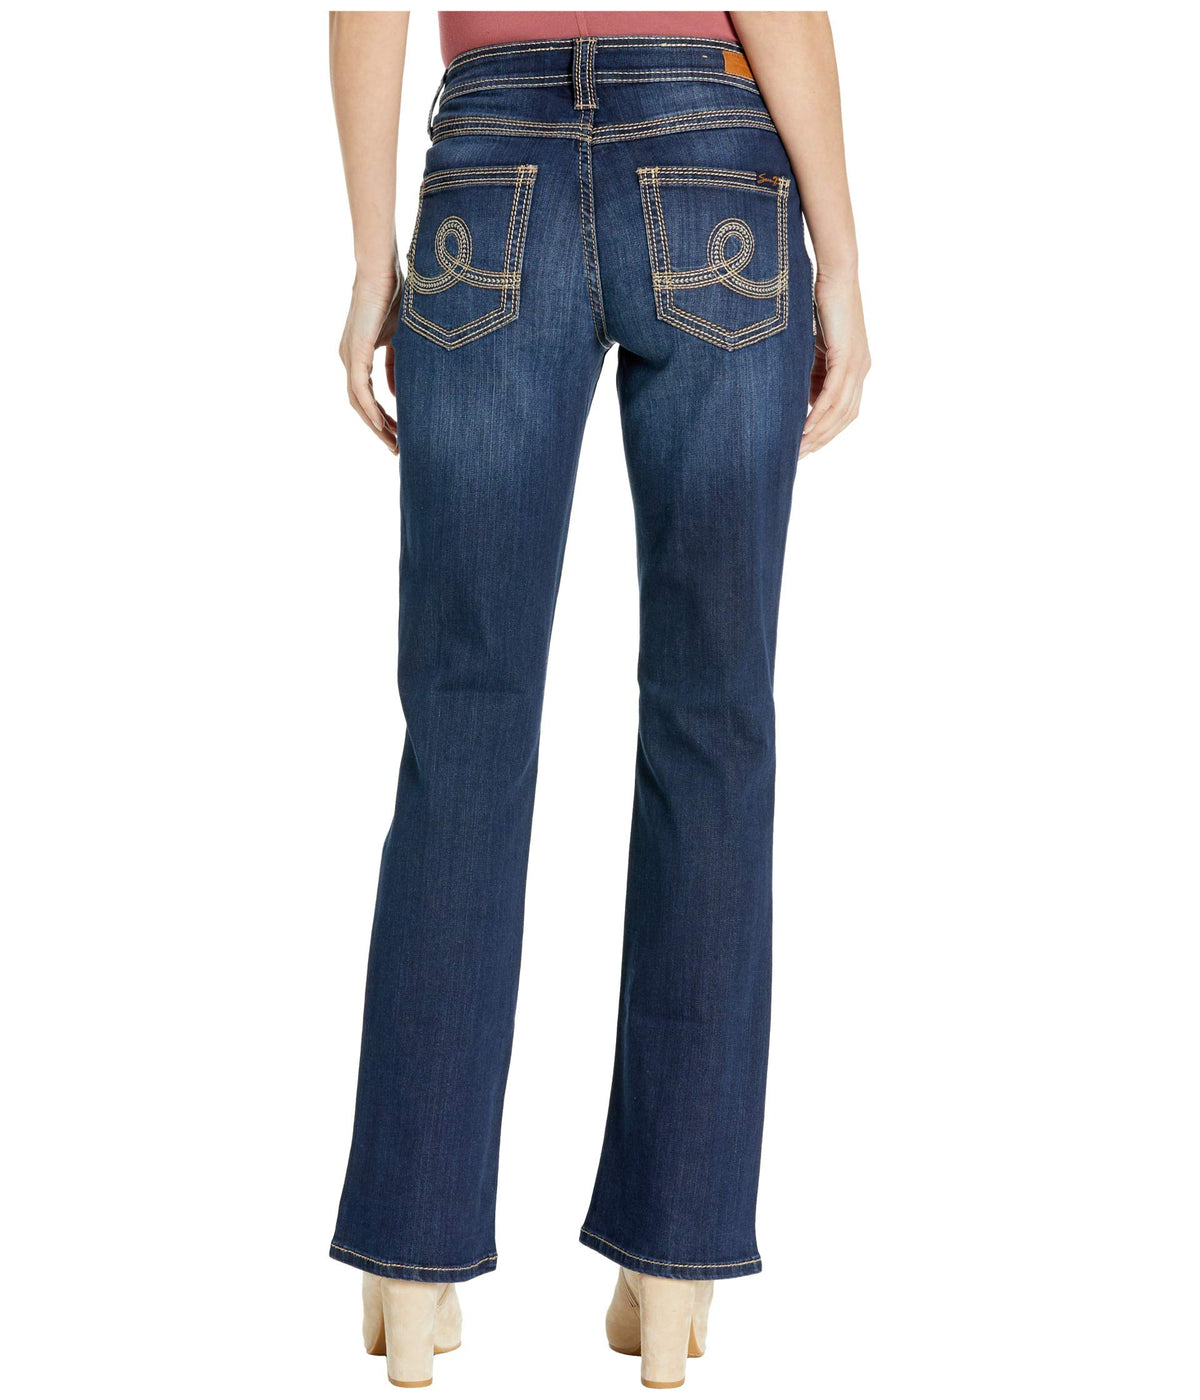 Embellished Bootcut Jeans in Challenger